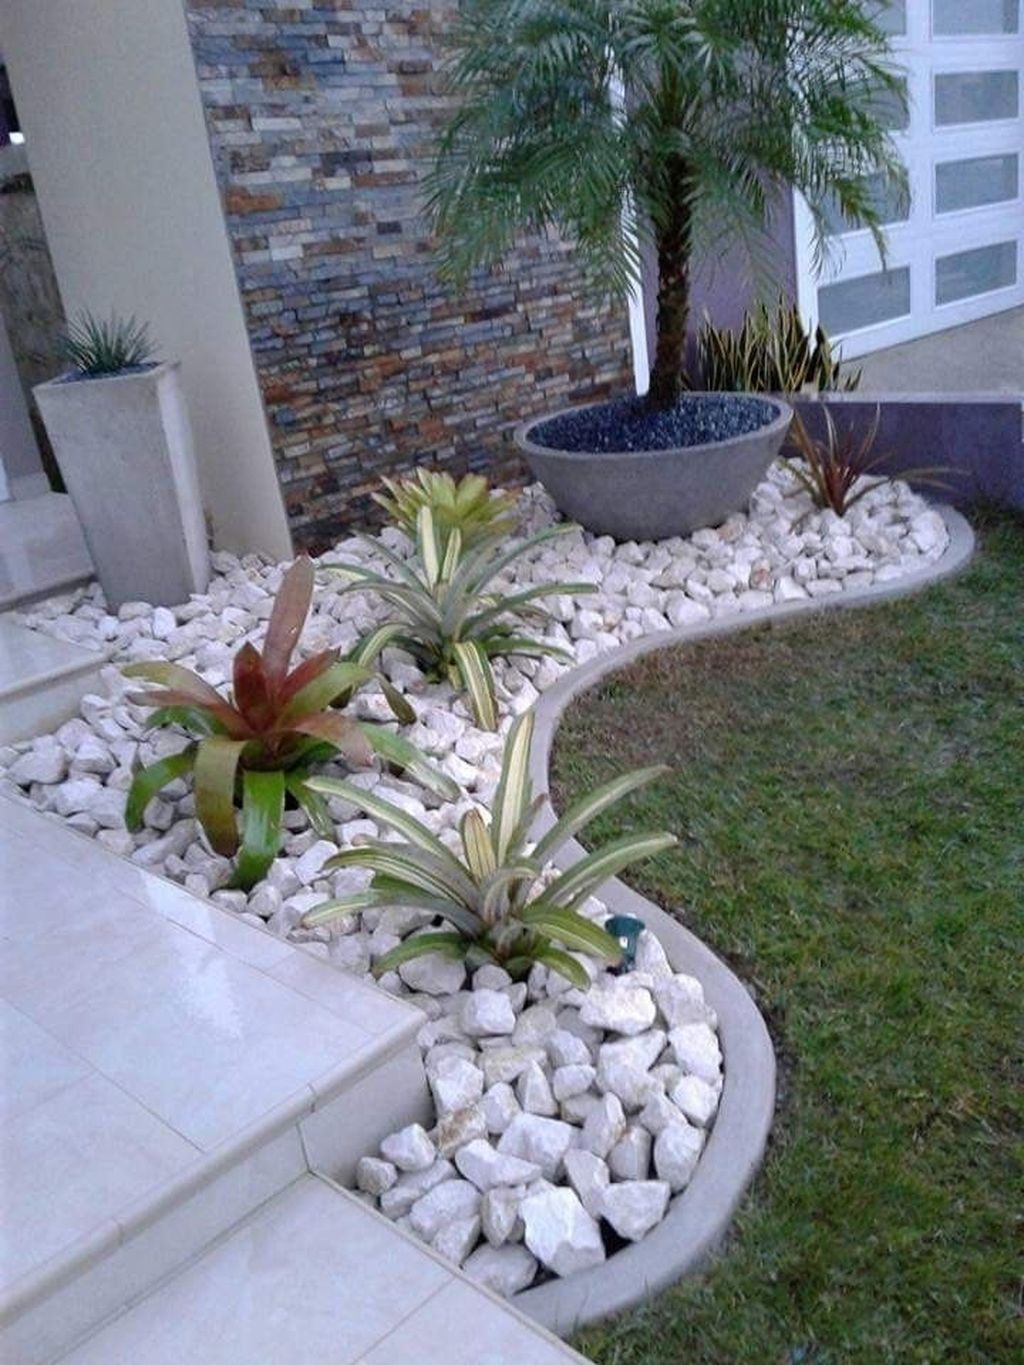 33 Inspiring Front Yard Landscaping Ideas In 2020 Small Front Yard Landscaping Rock Garden Landscaping Front Yard Landscaping Design